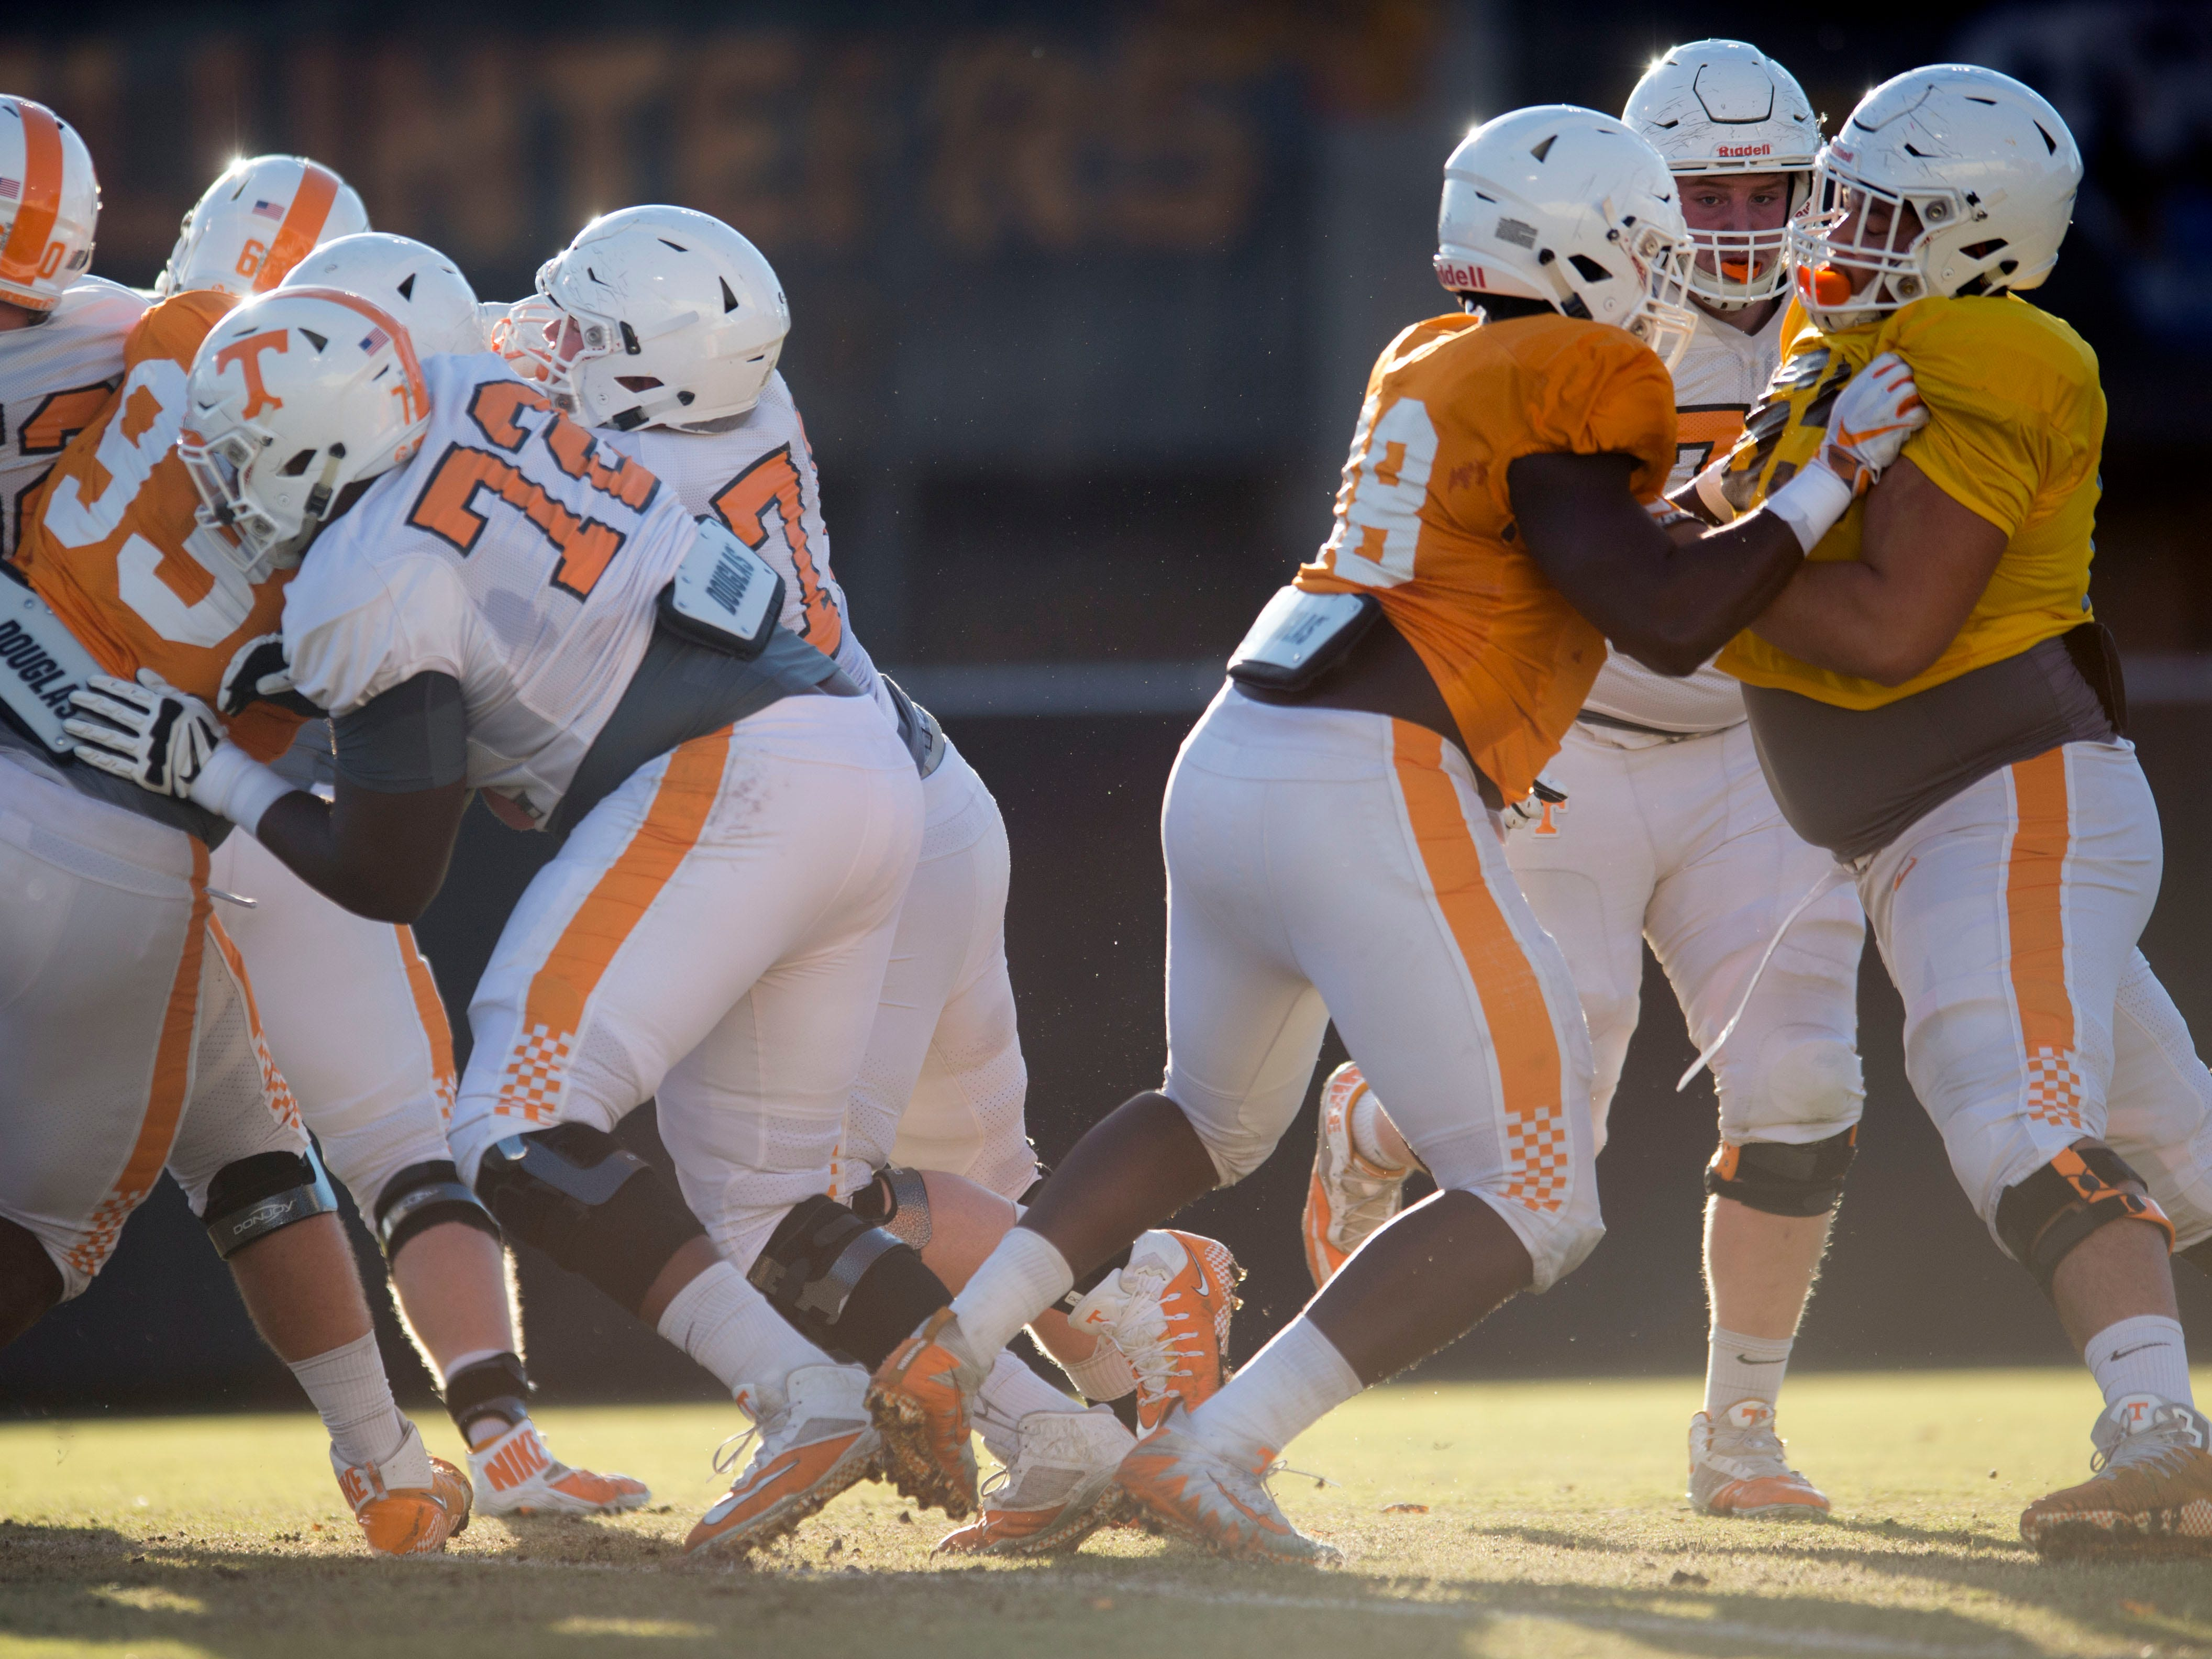 Tennessee defensive linemen run drills at football practice on Tuesday, November 6, 2018.